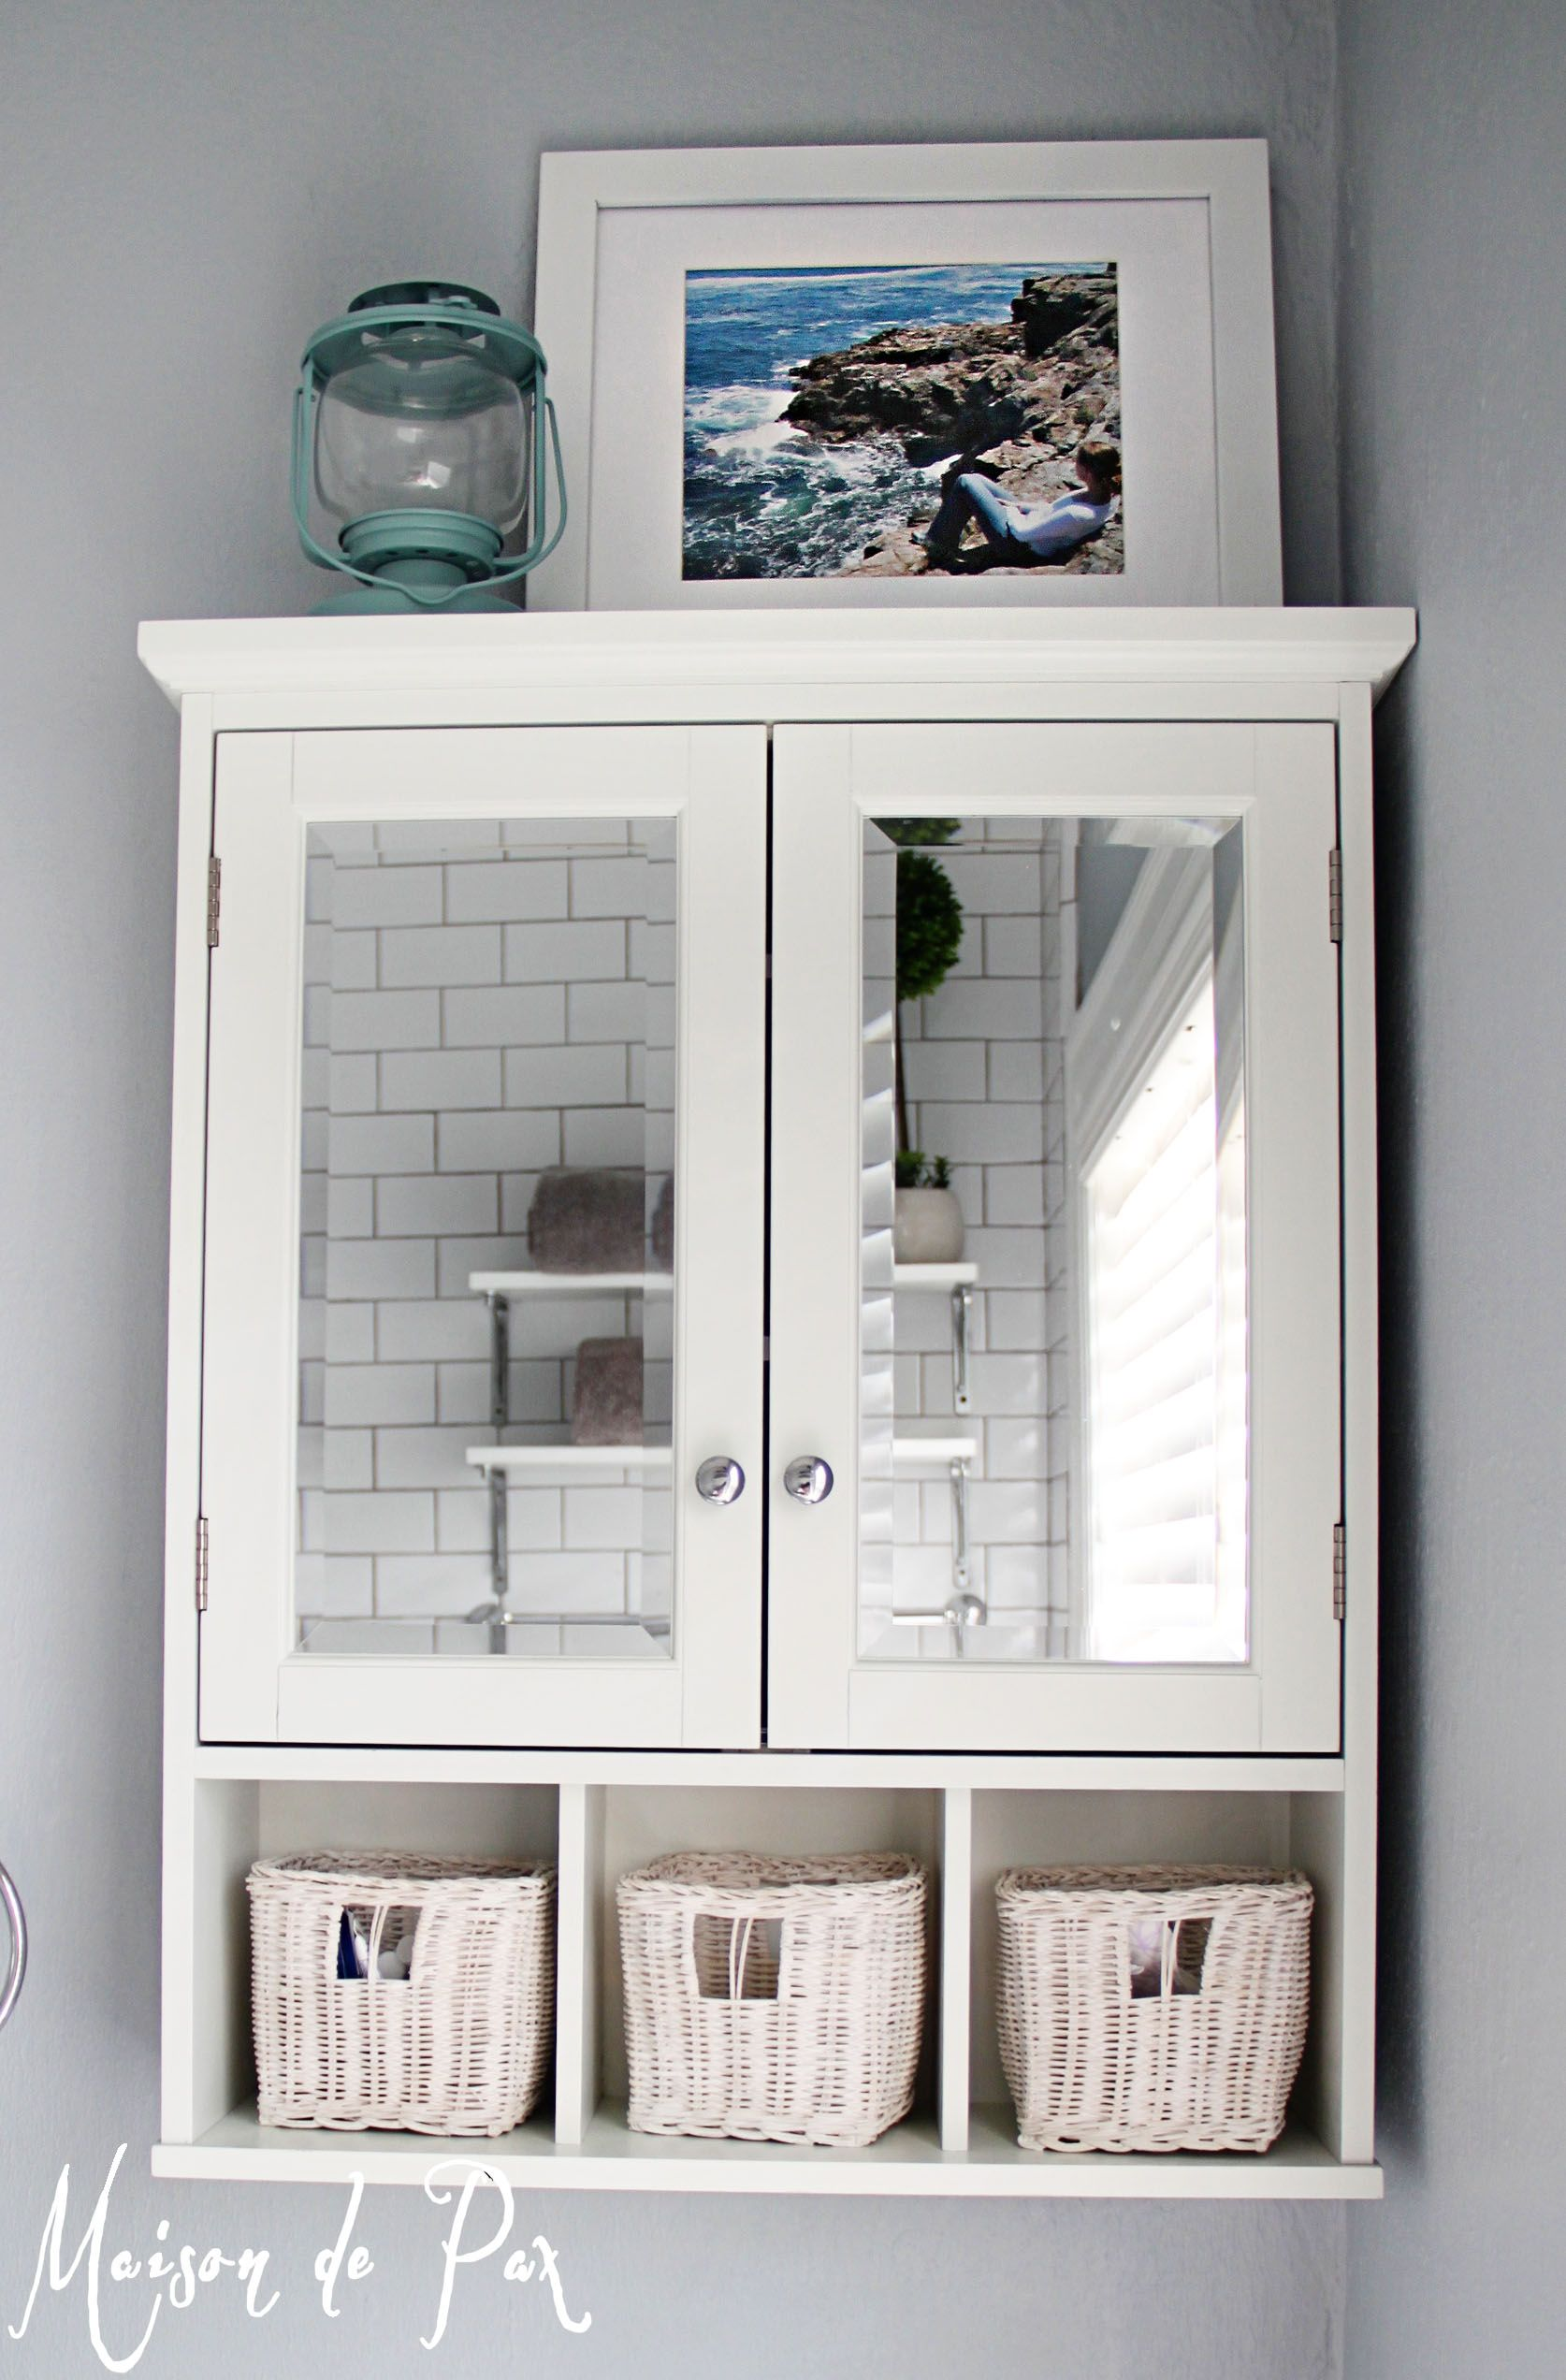 Modern bathroom storage cabinets - 10 Tips For Designing A Small Bathroom Bathroom Cabinet